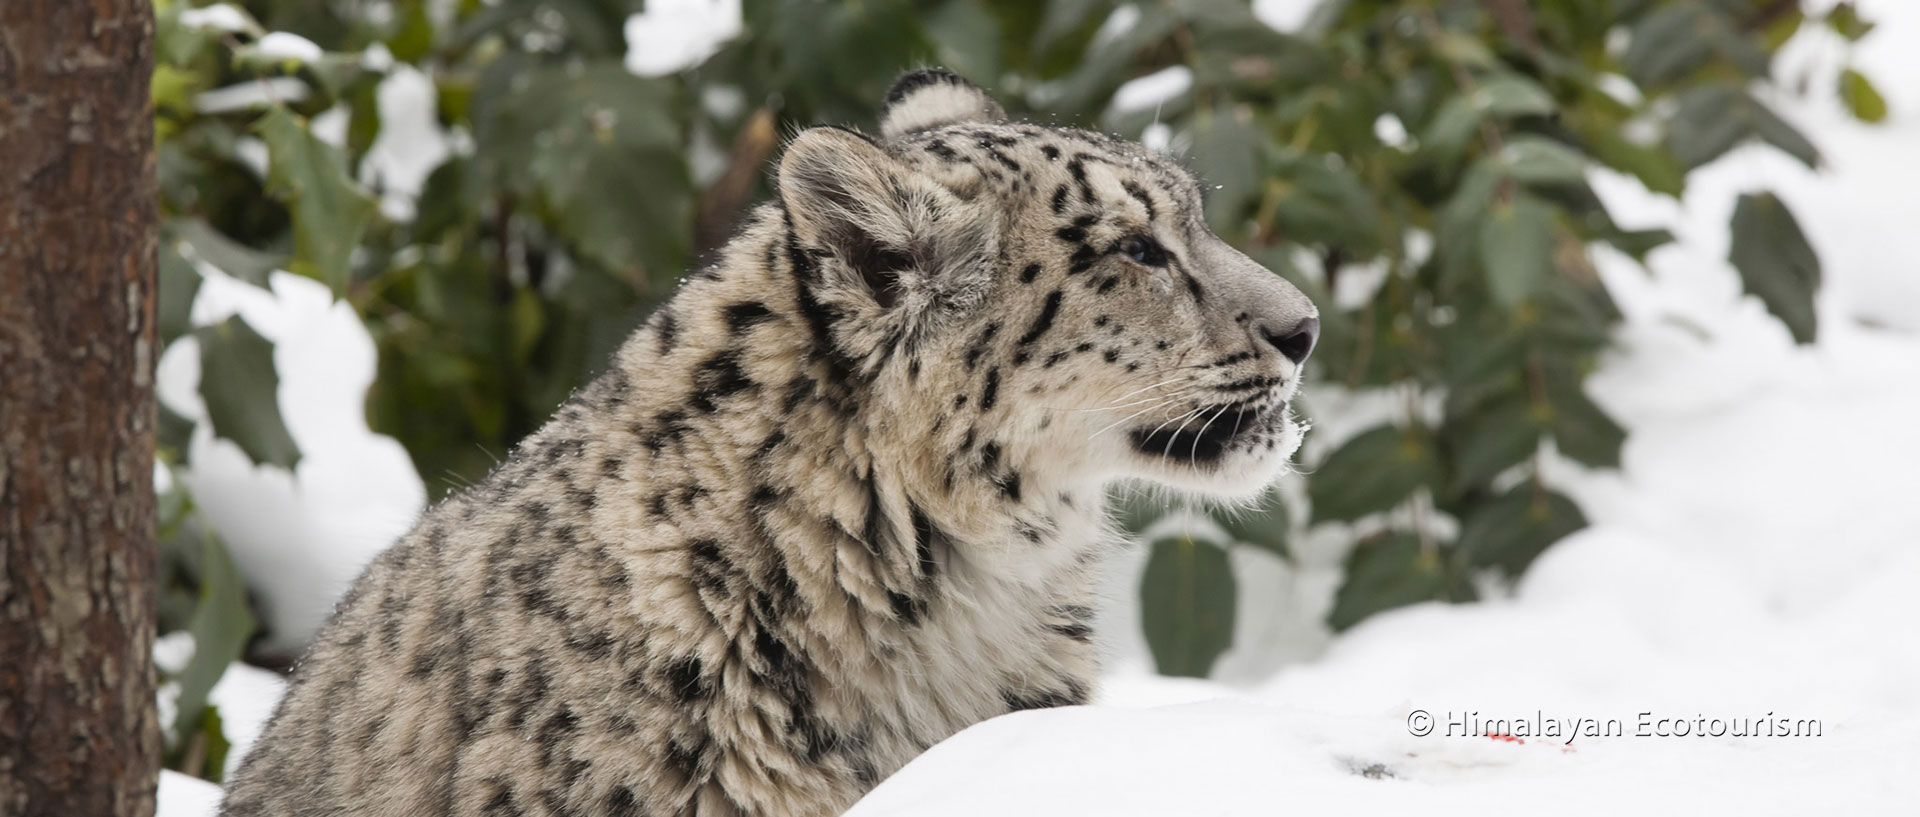 The legendary snow leopard